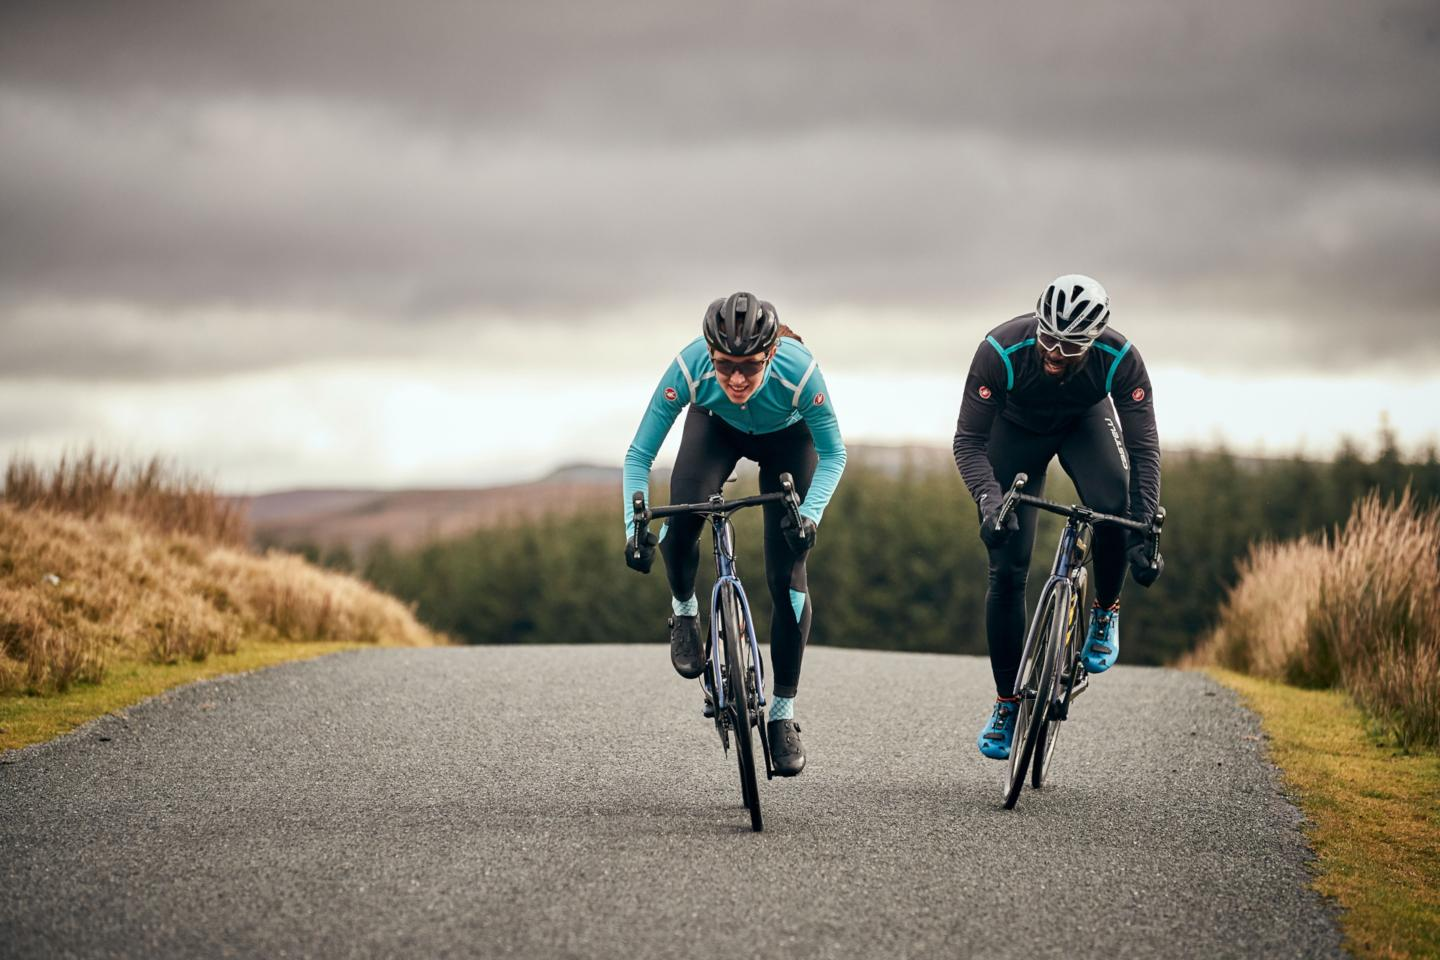 Cycle Insurance for Triathletes